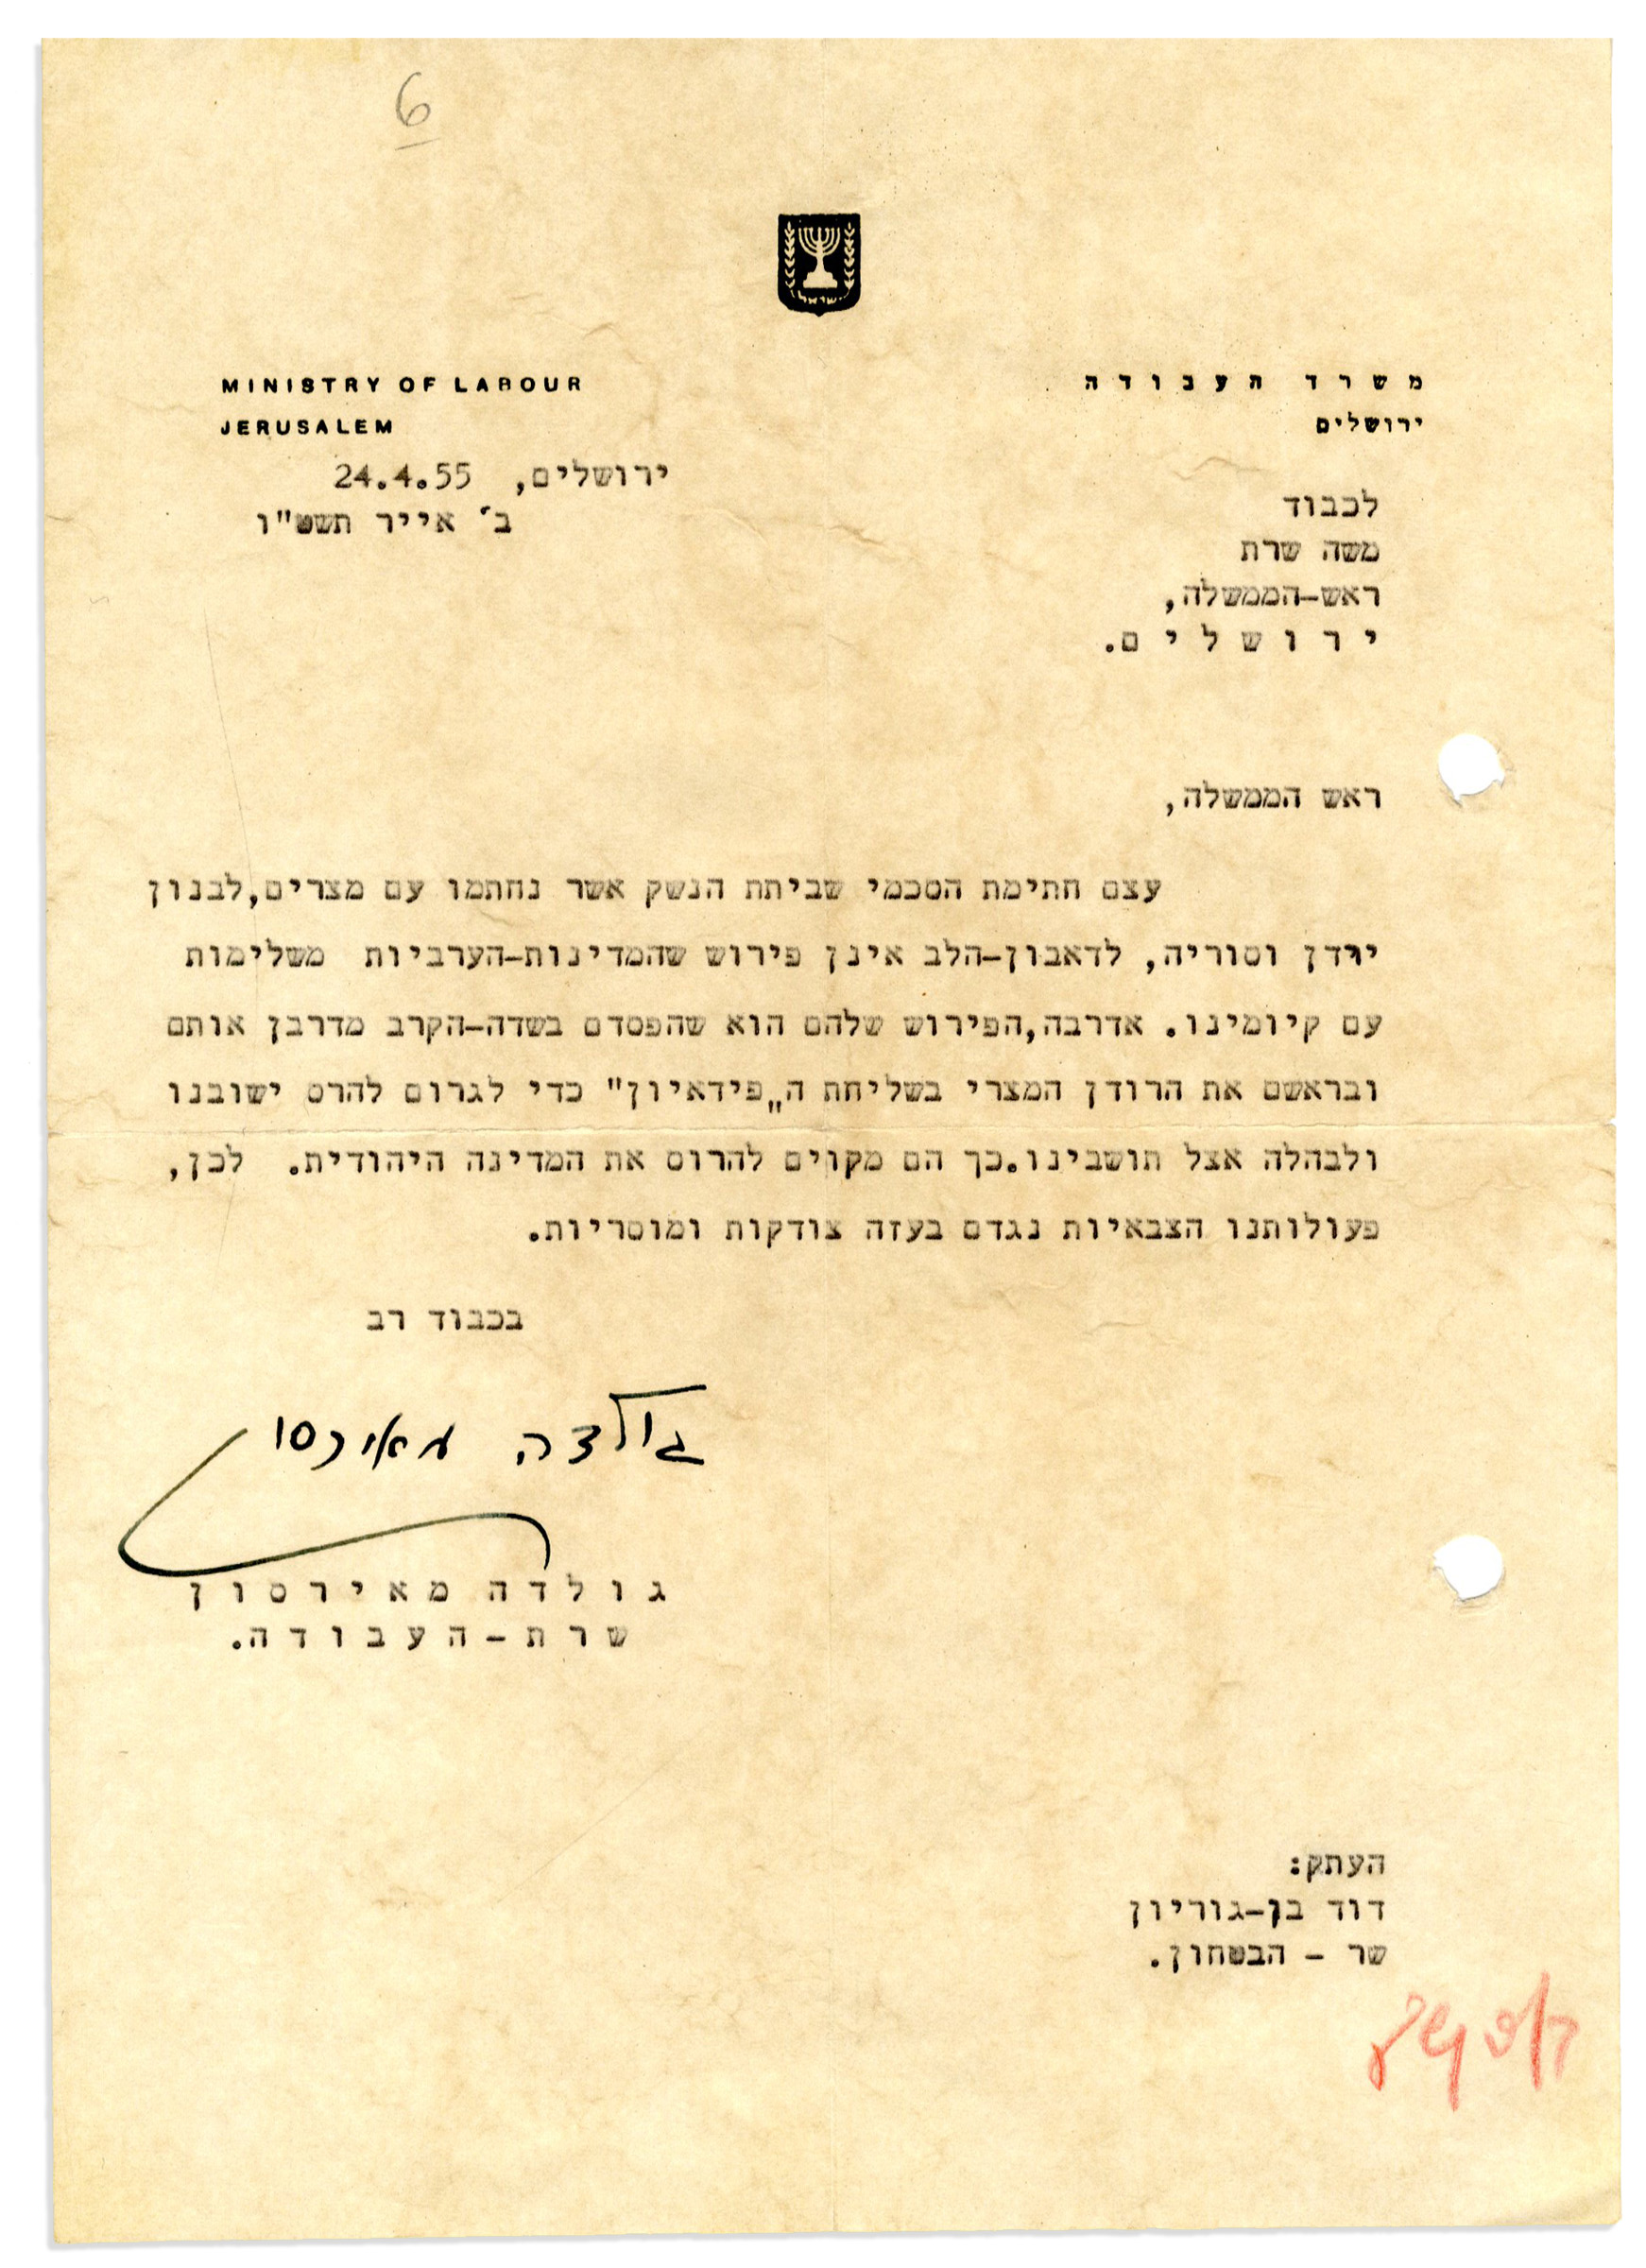 Judaica memorabilia Golda Meir Letter Signed Regarding the 1949 Armistice Agreements -- Mentioning Countries' in Conflict, Egypt, Syria, Jordan & Lebanon -- ''...their interpretation is...to destroy our settlements...''